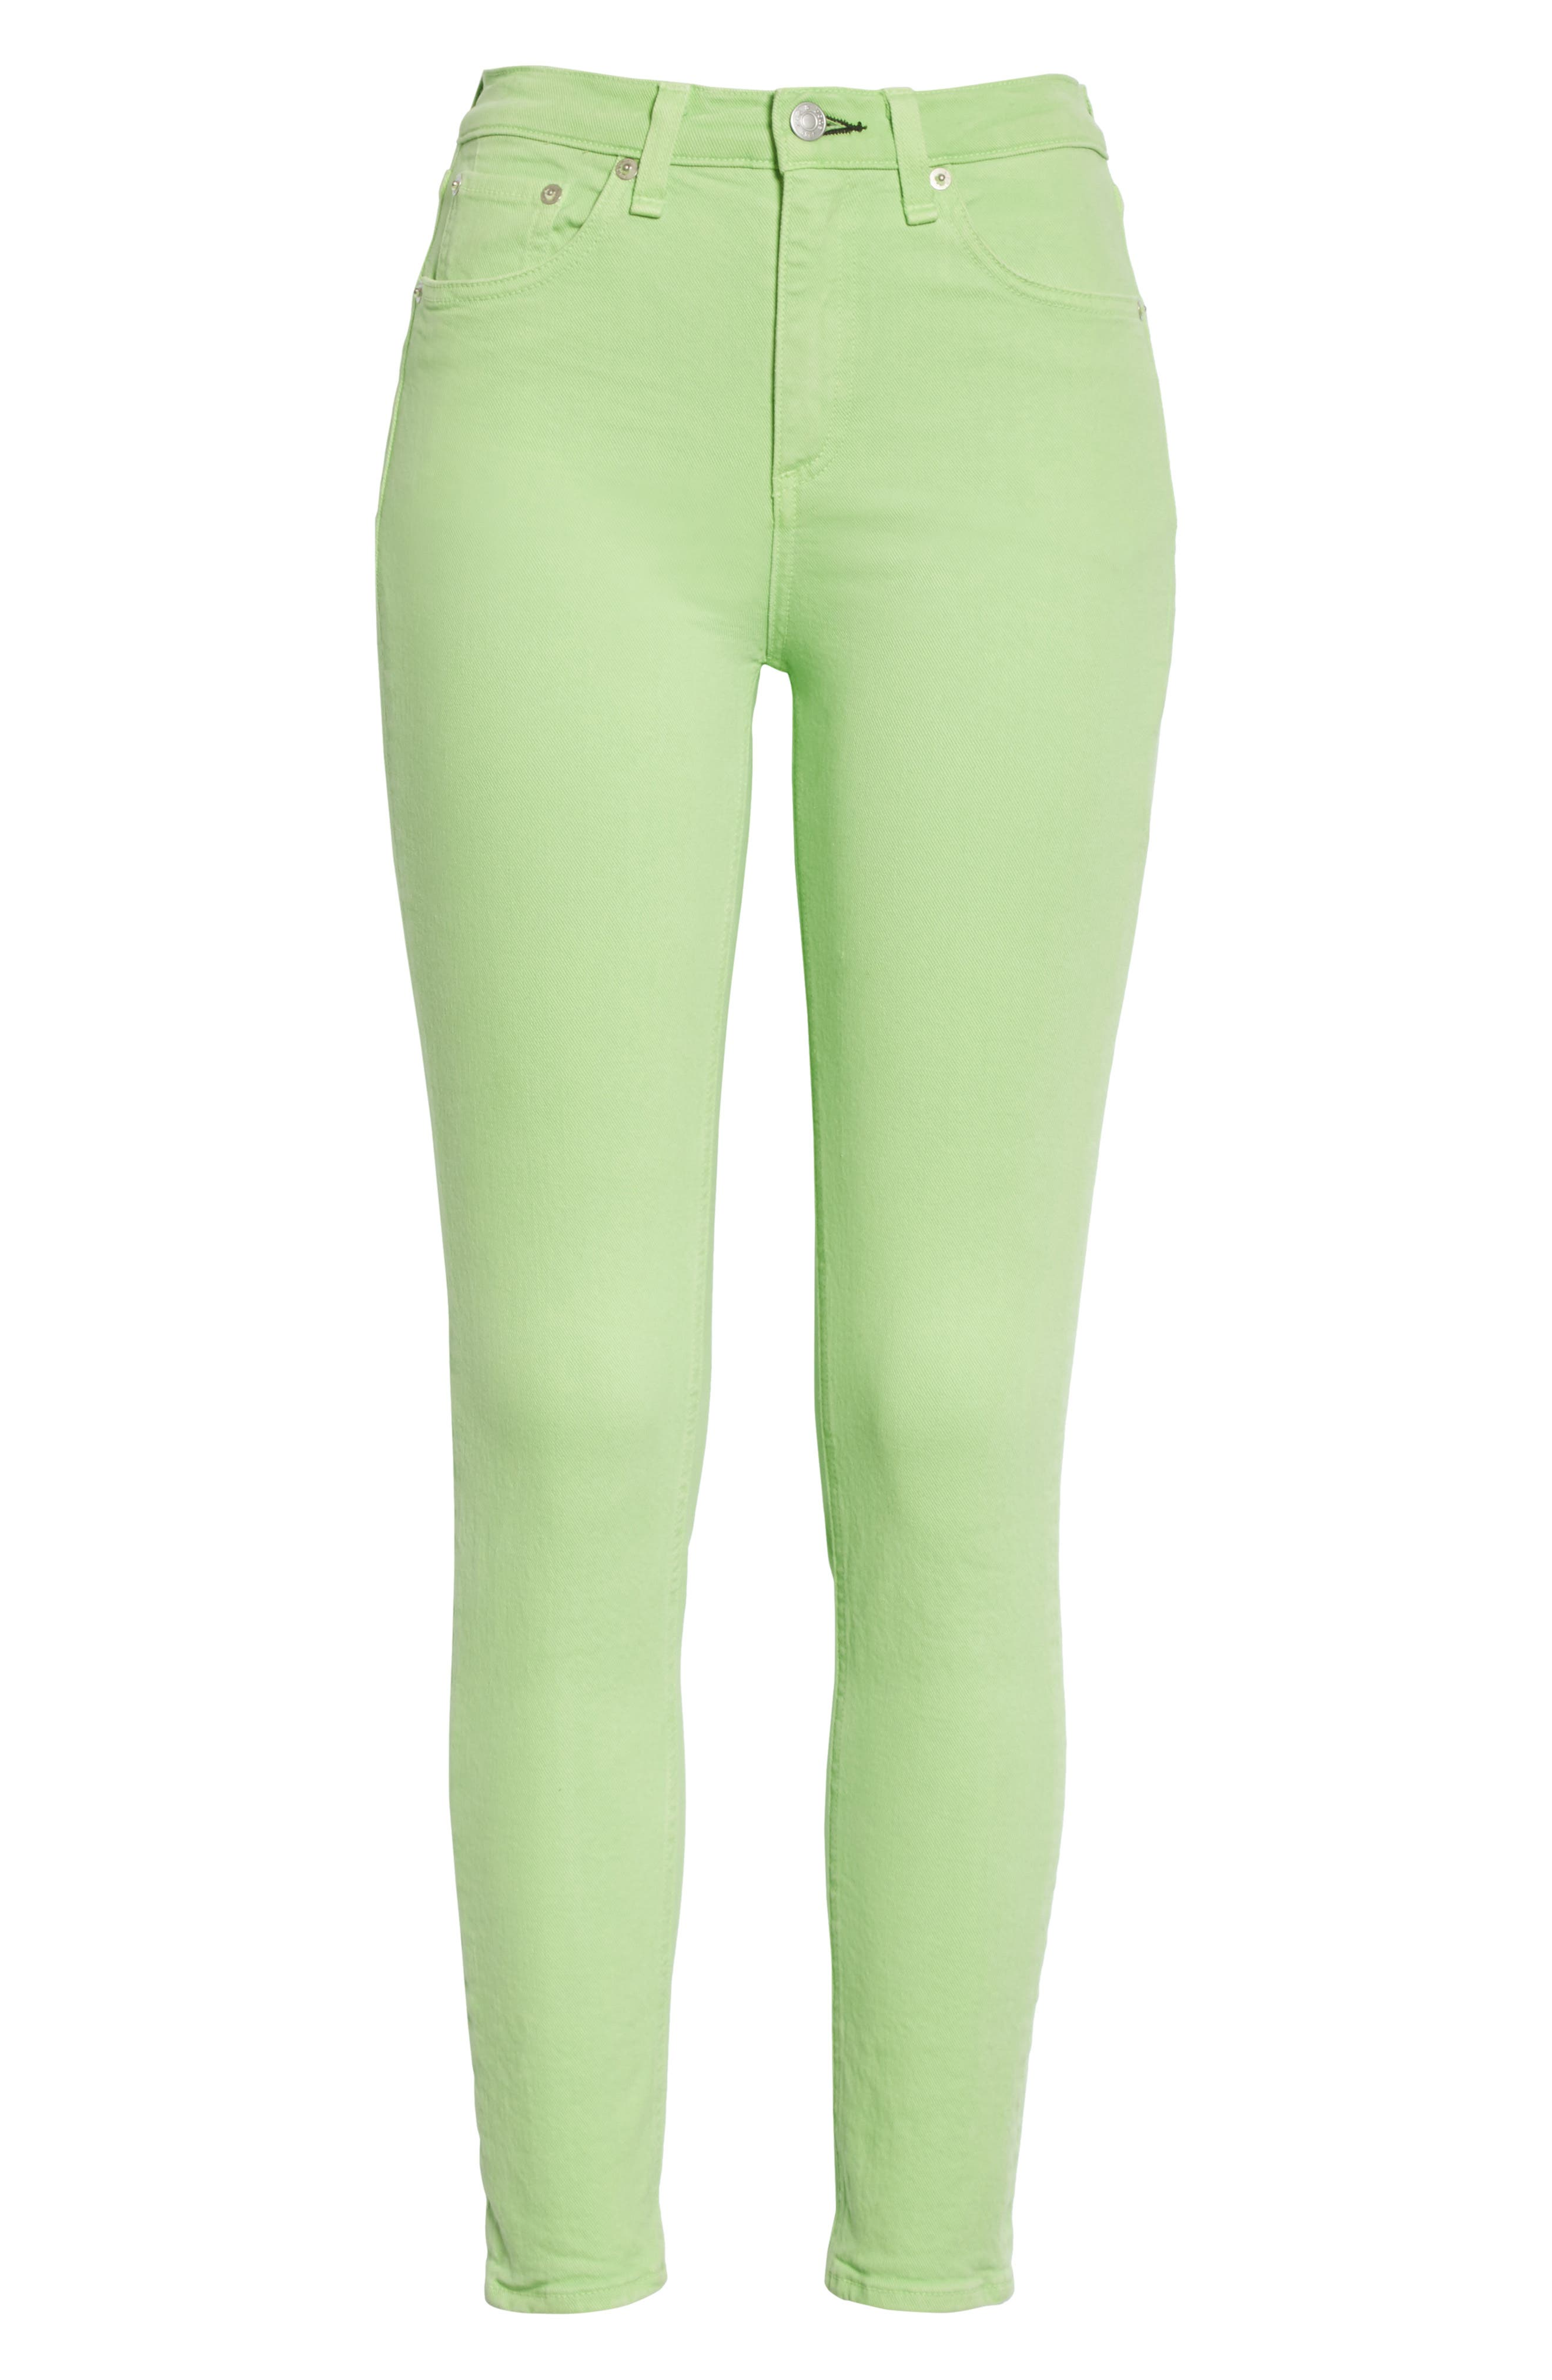 High Rise Skinny Jeans,                             Alternate thumbnail 6, color,                             371